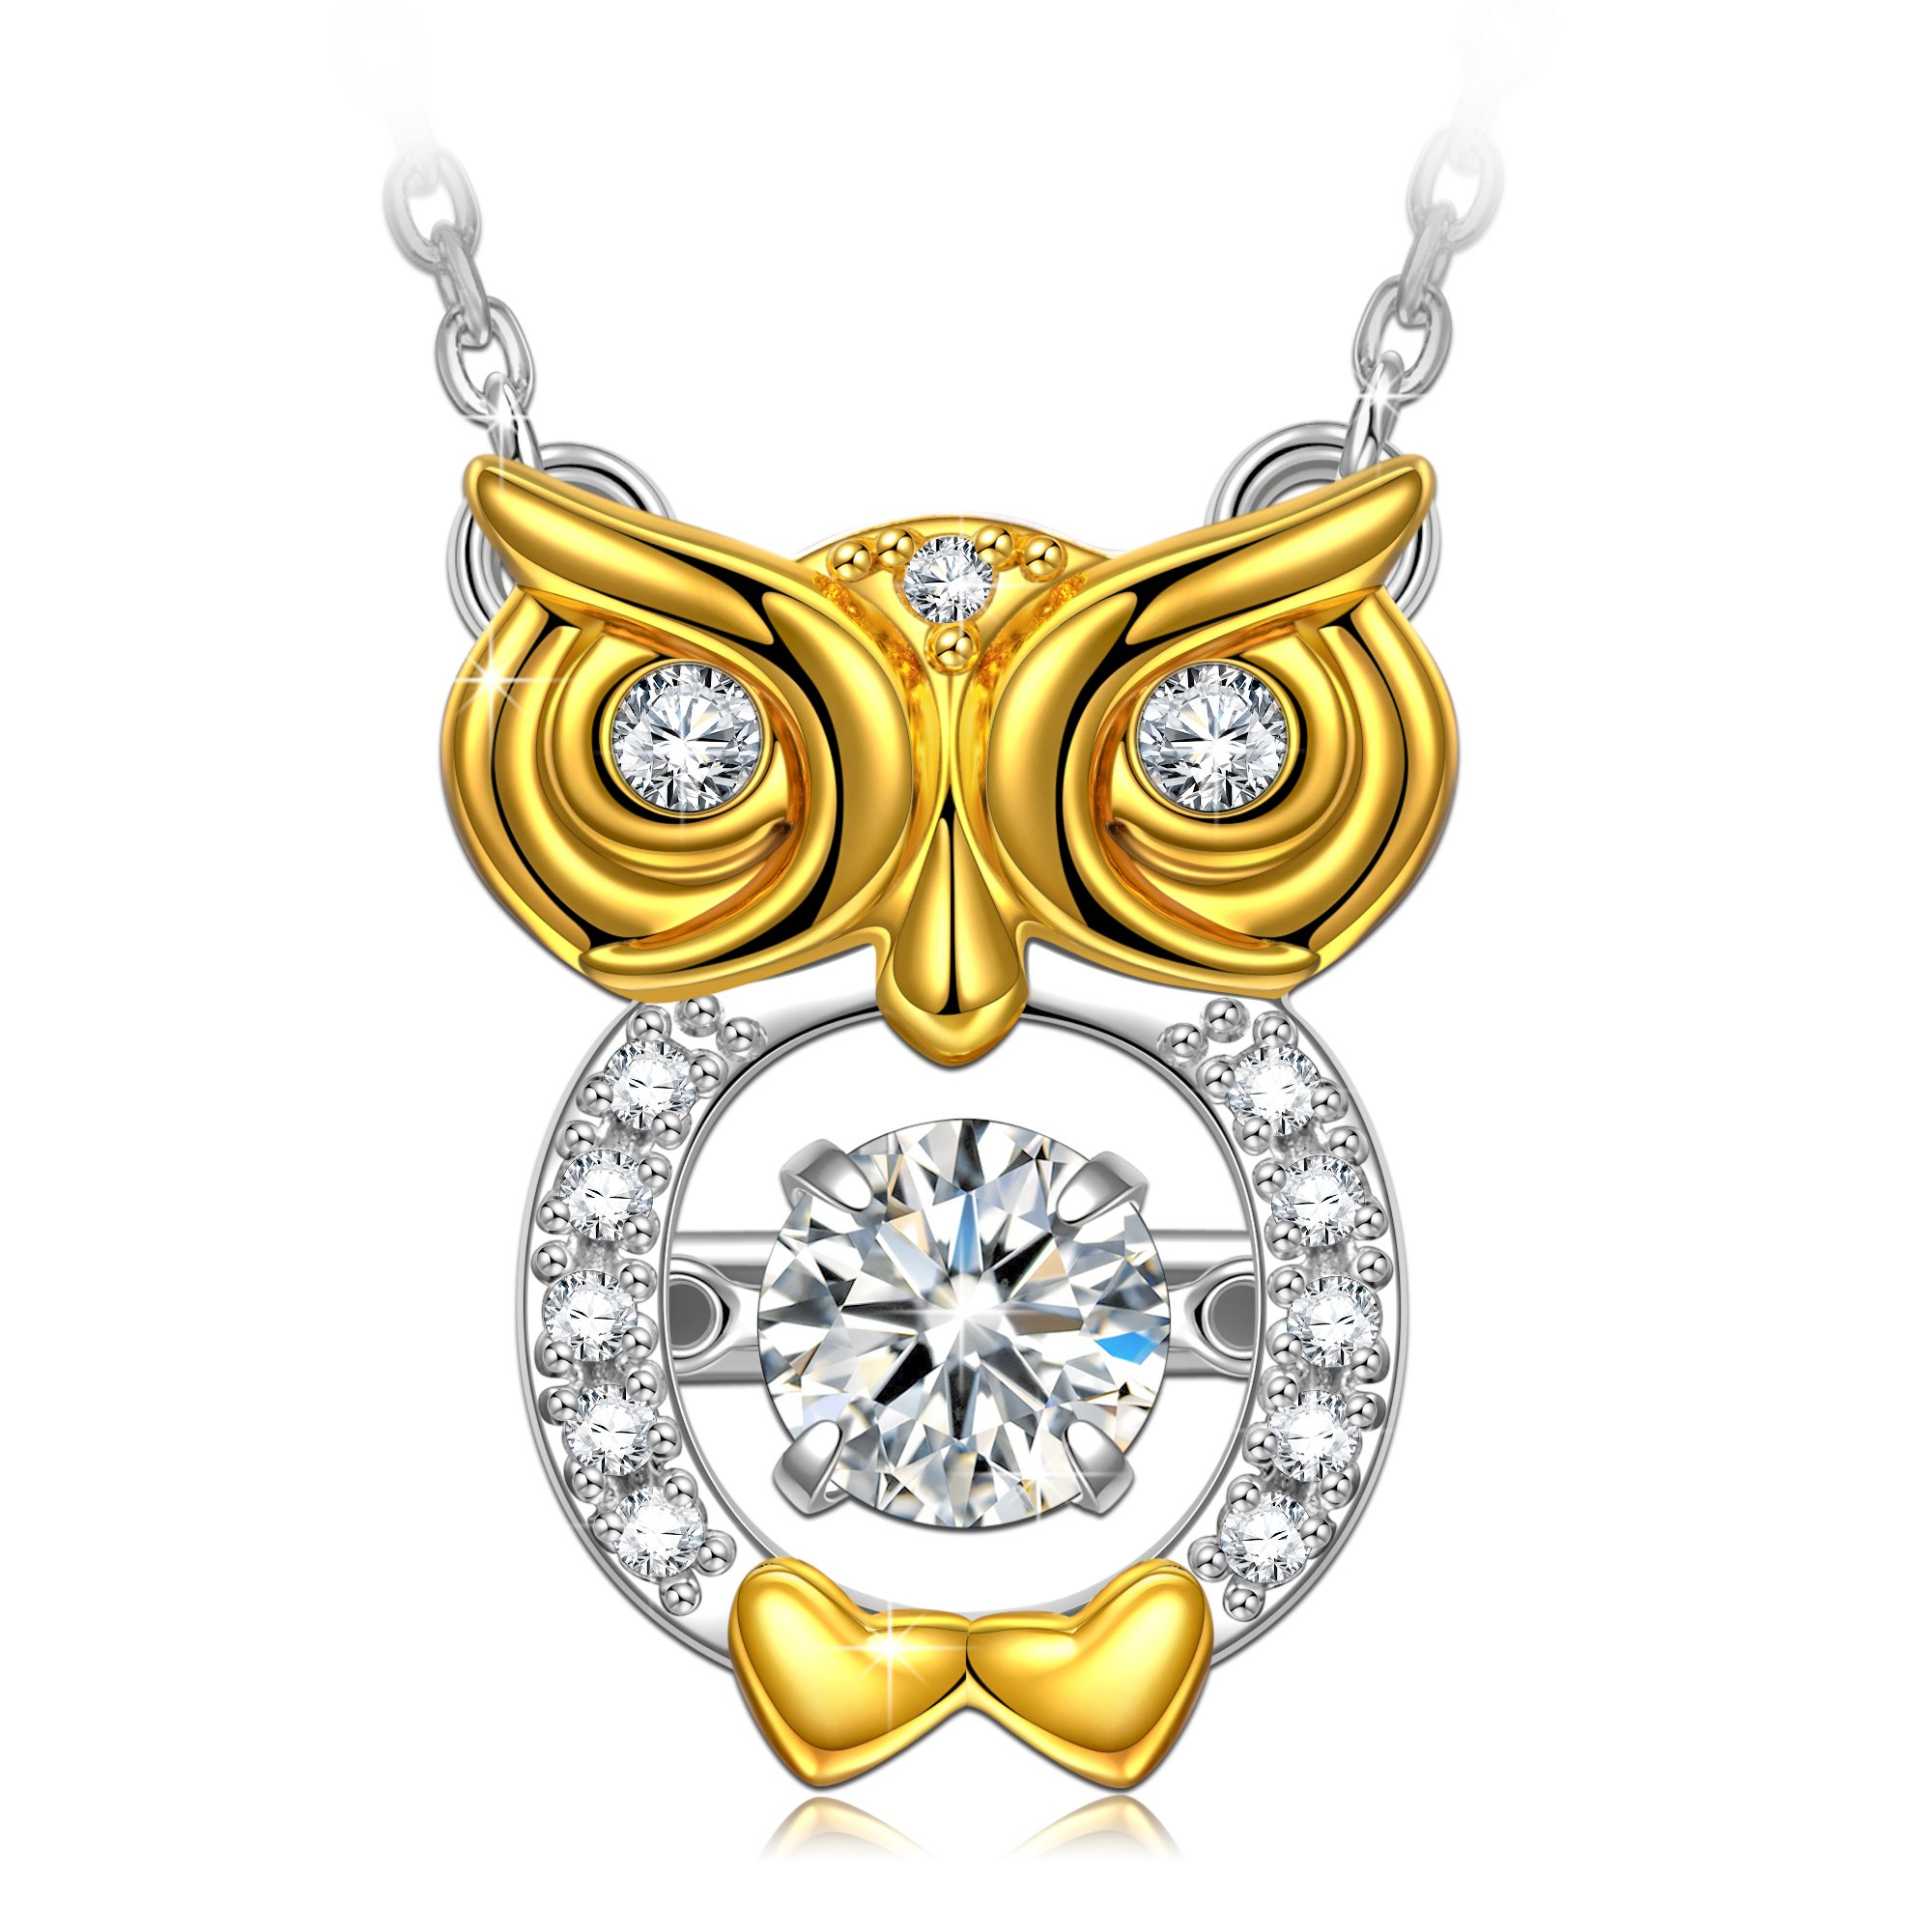 Dancing Stone Owl Necklace 925 Sterling Silver Necklaces for Women Dancing Diamond Necklace Christmas Birthday Gifts for Girls Teens Gold Animal Necklaces Women Pendant Swarovski Crystals Jewelry